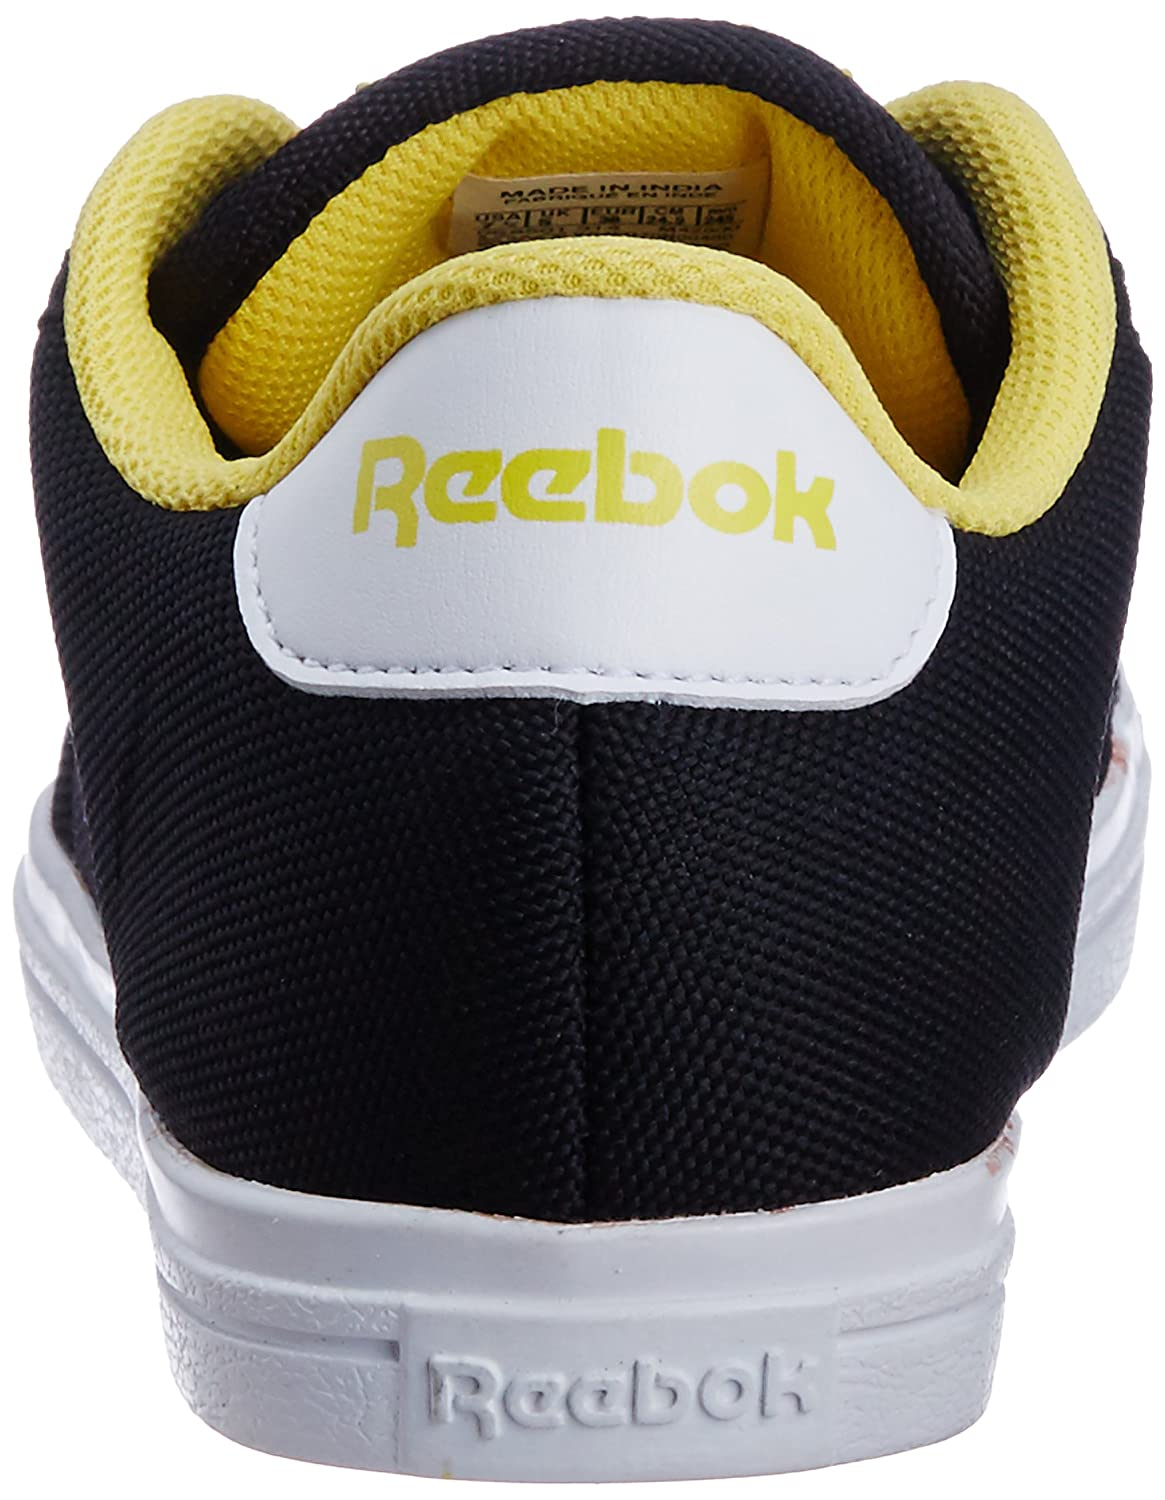 4a09afc6550f Reebok Classics Women s ON Court III LP Black and Yellow Canvas Sneakers -  7 UK  Buy Online at Low Prices in India - Amazon.in